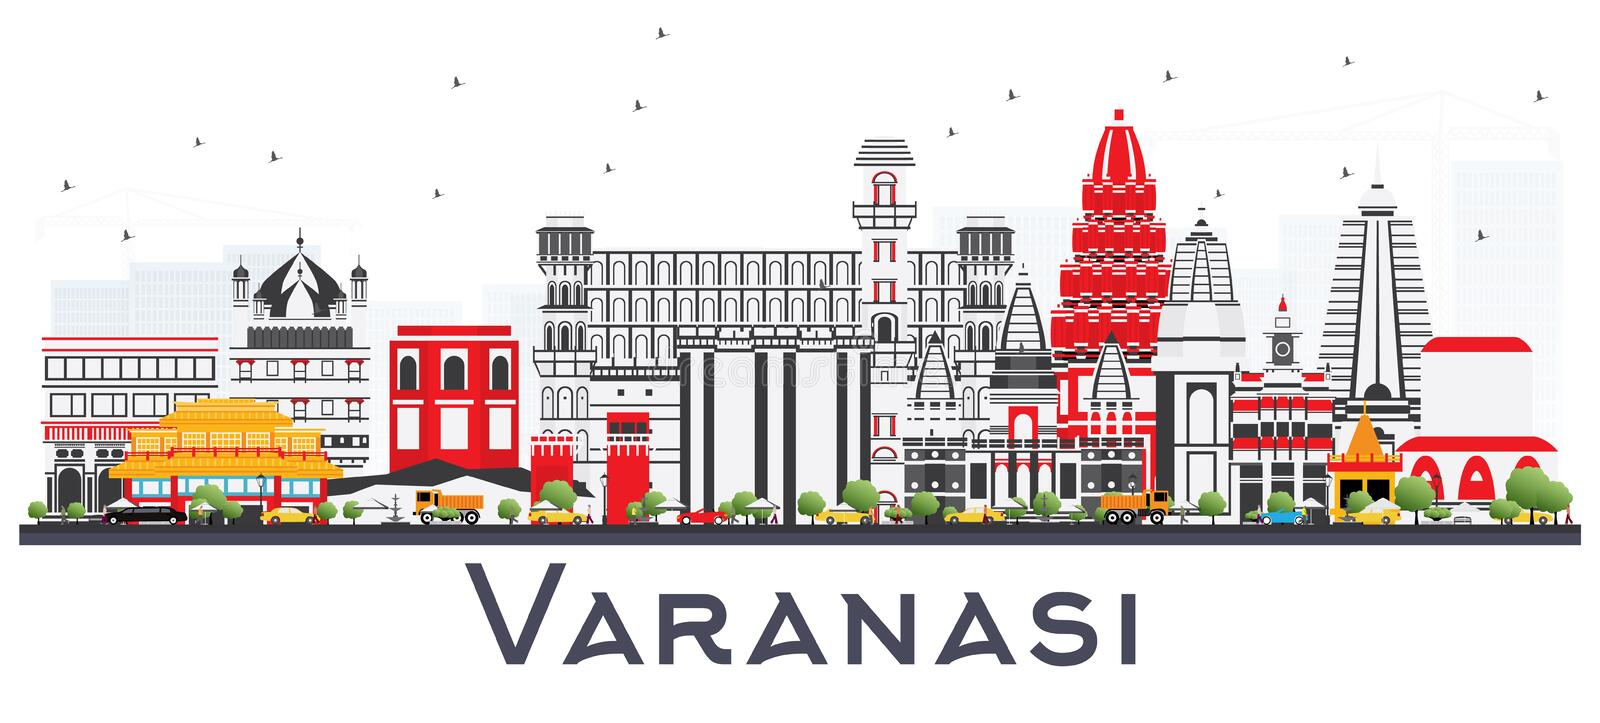 Varanasi India City Skyline with Color Buildings Isolated on White. Vector Illustration. Business Travel and Tourism Concept with Historic Architecture royalty free illustration